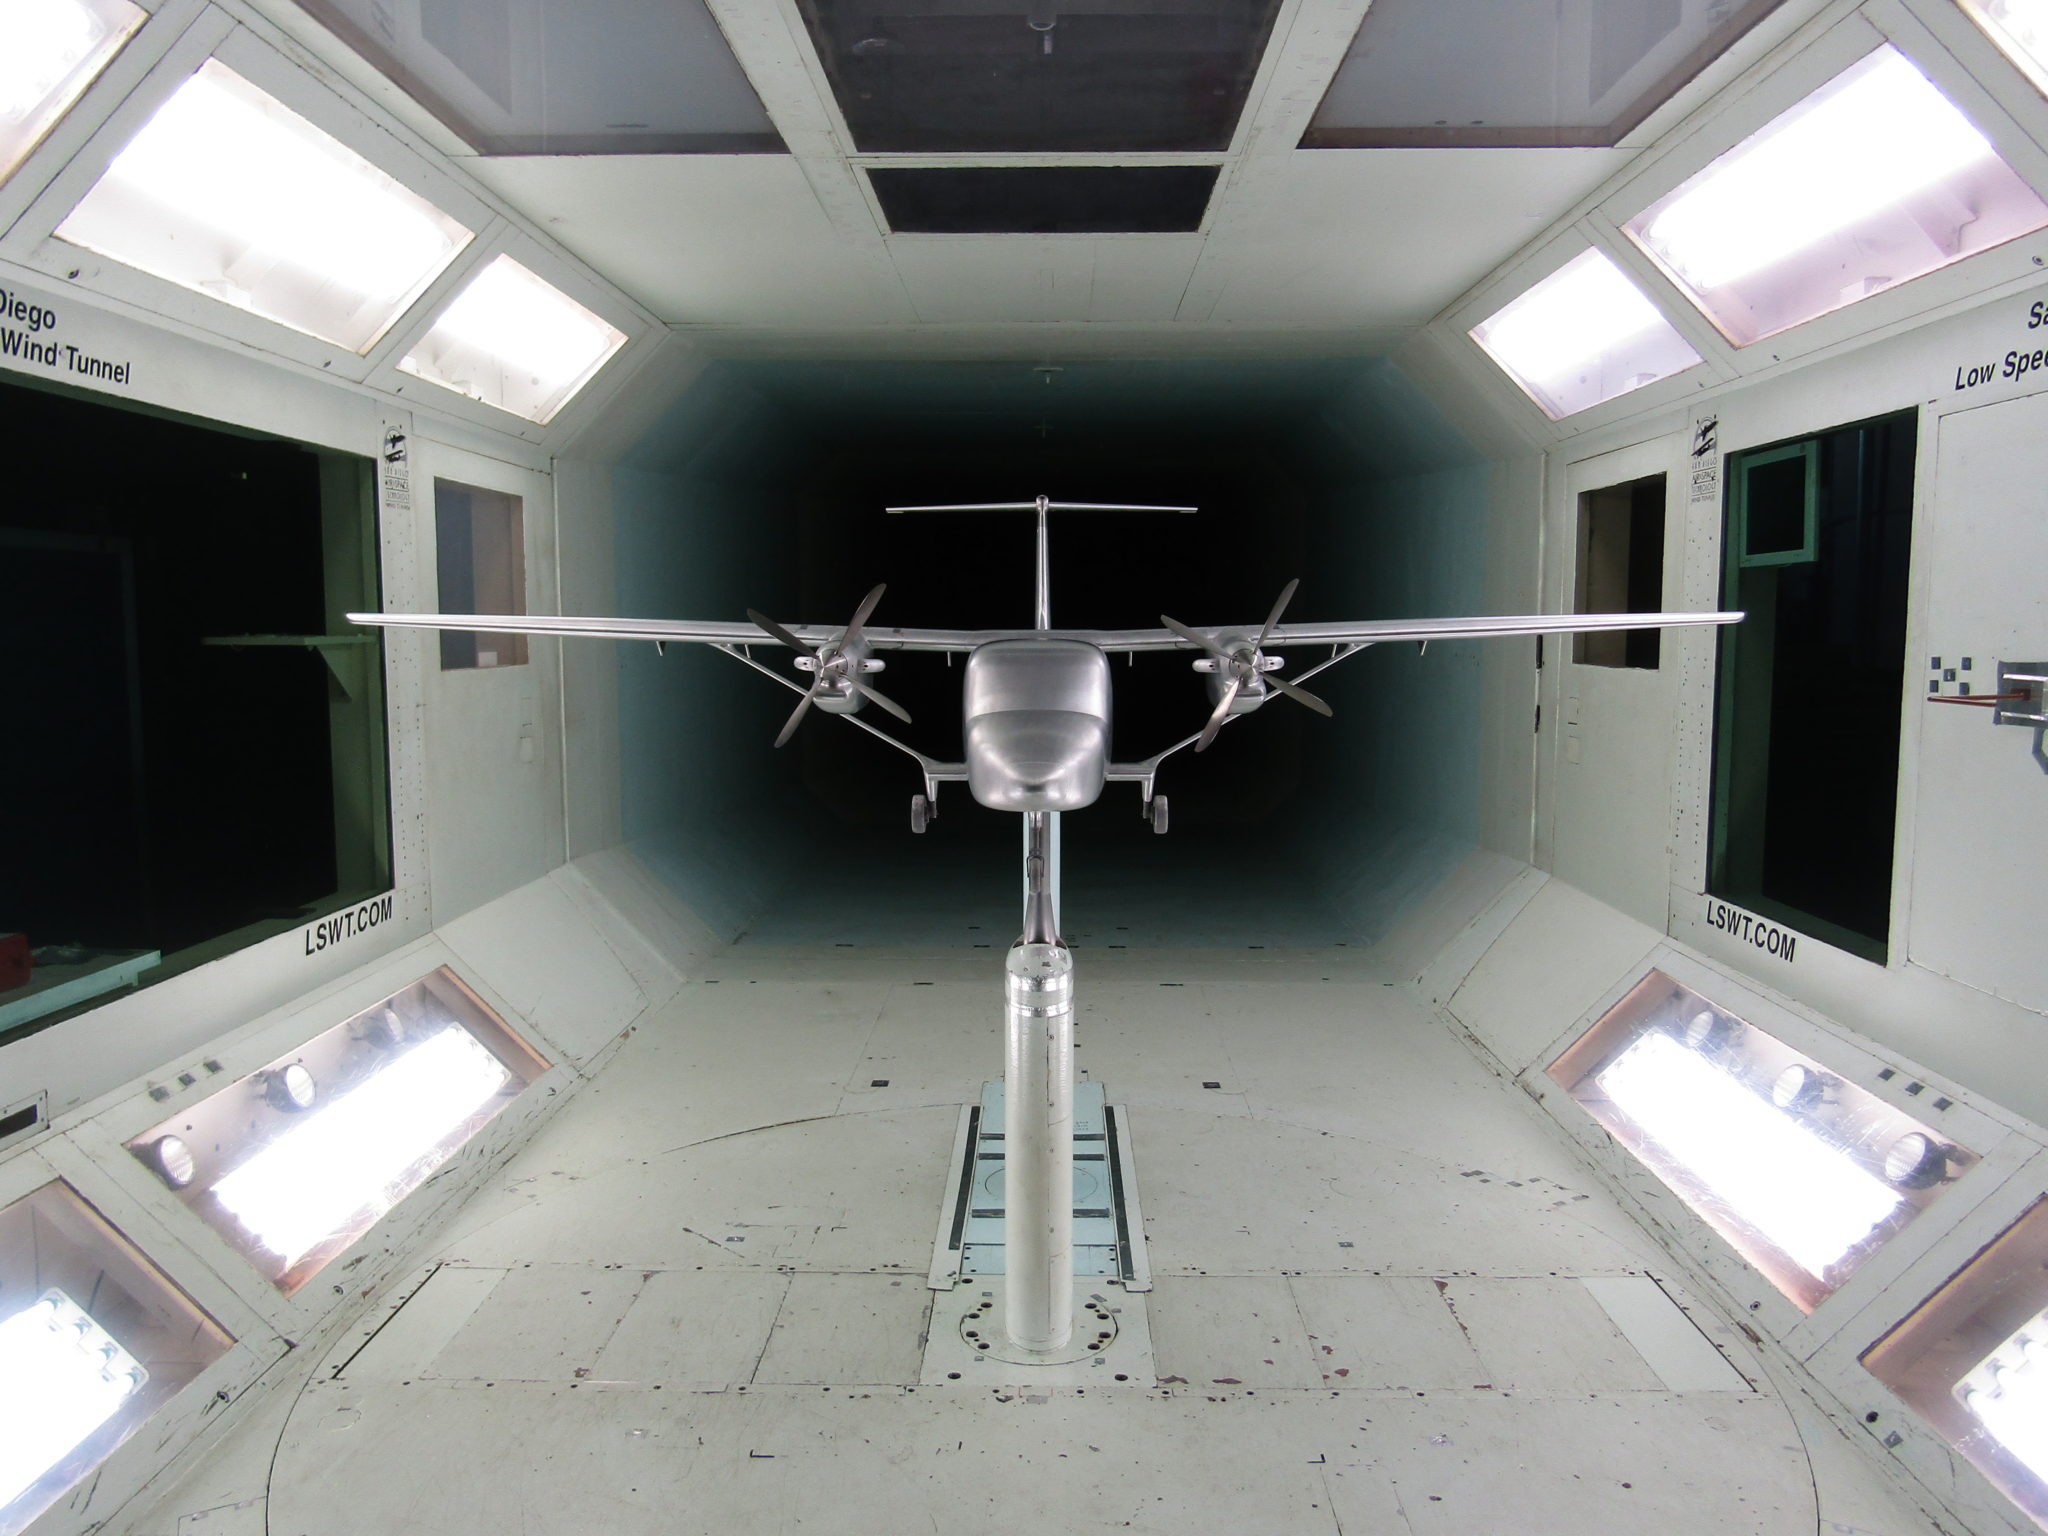 Cessna SkyCourier Completes Initial Wind Tunnel Testing